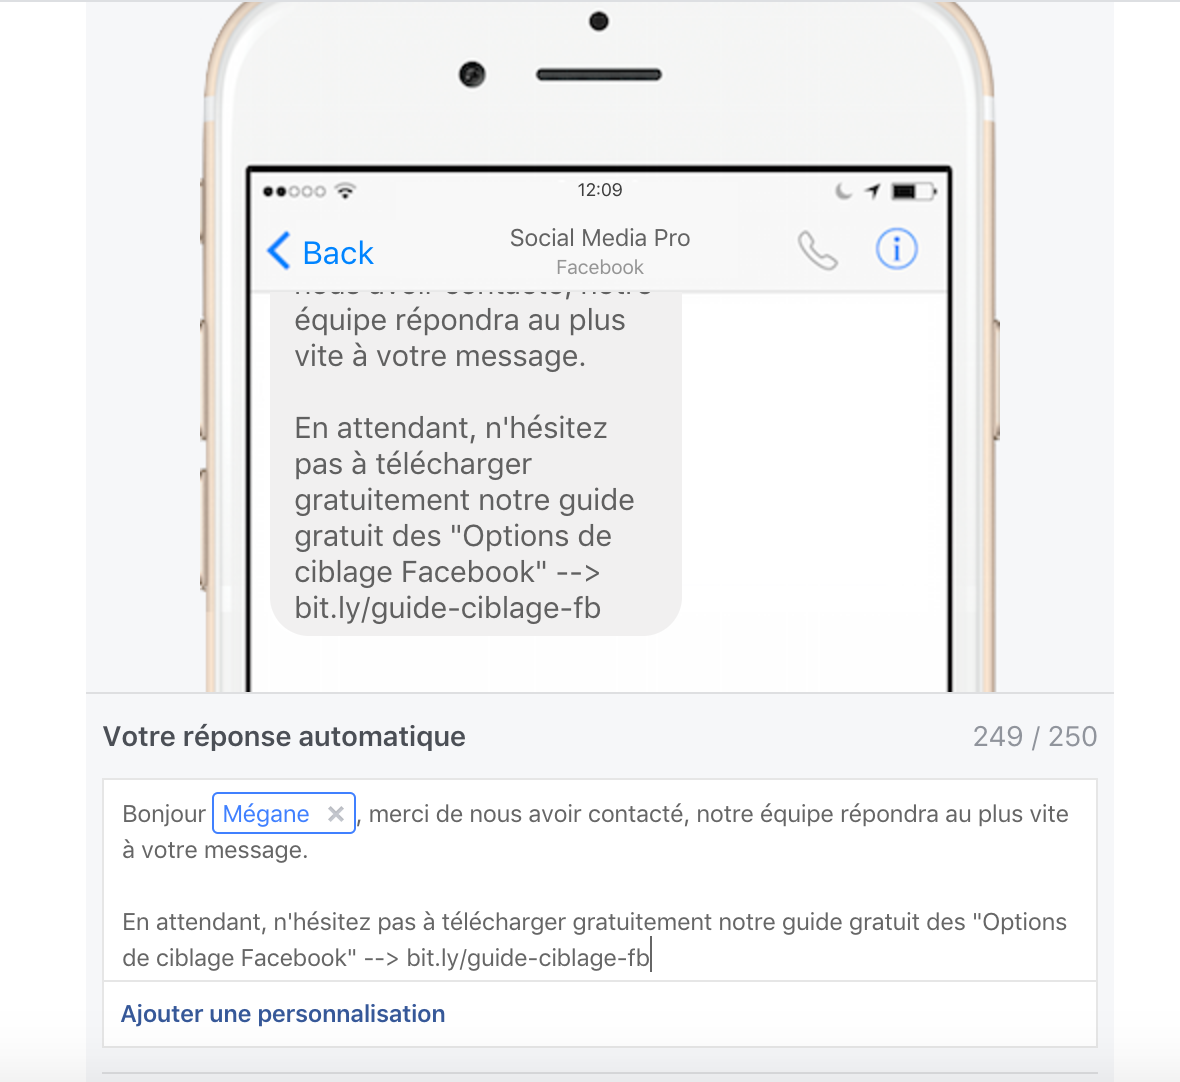 message-automatique-bienvenu-pmessenger-page-facebook-guide-social-media-pro-7